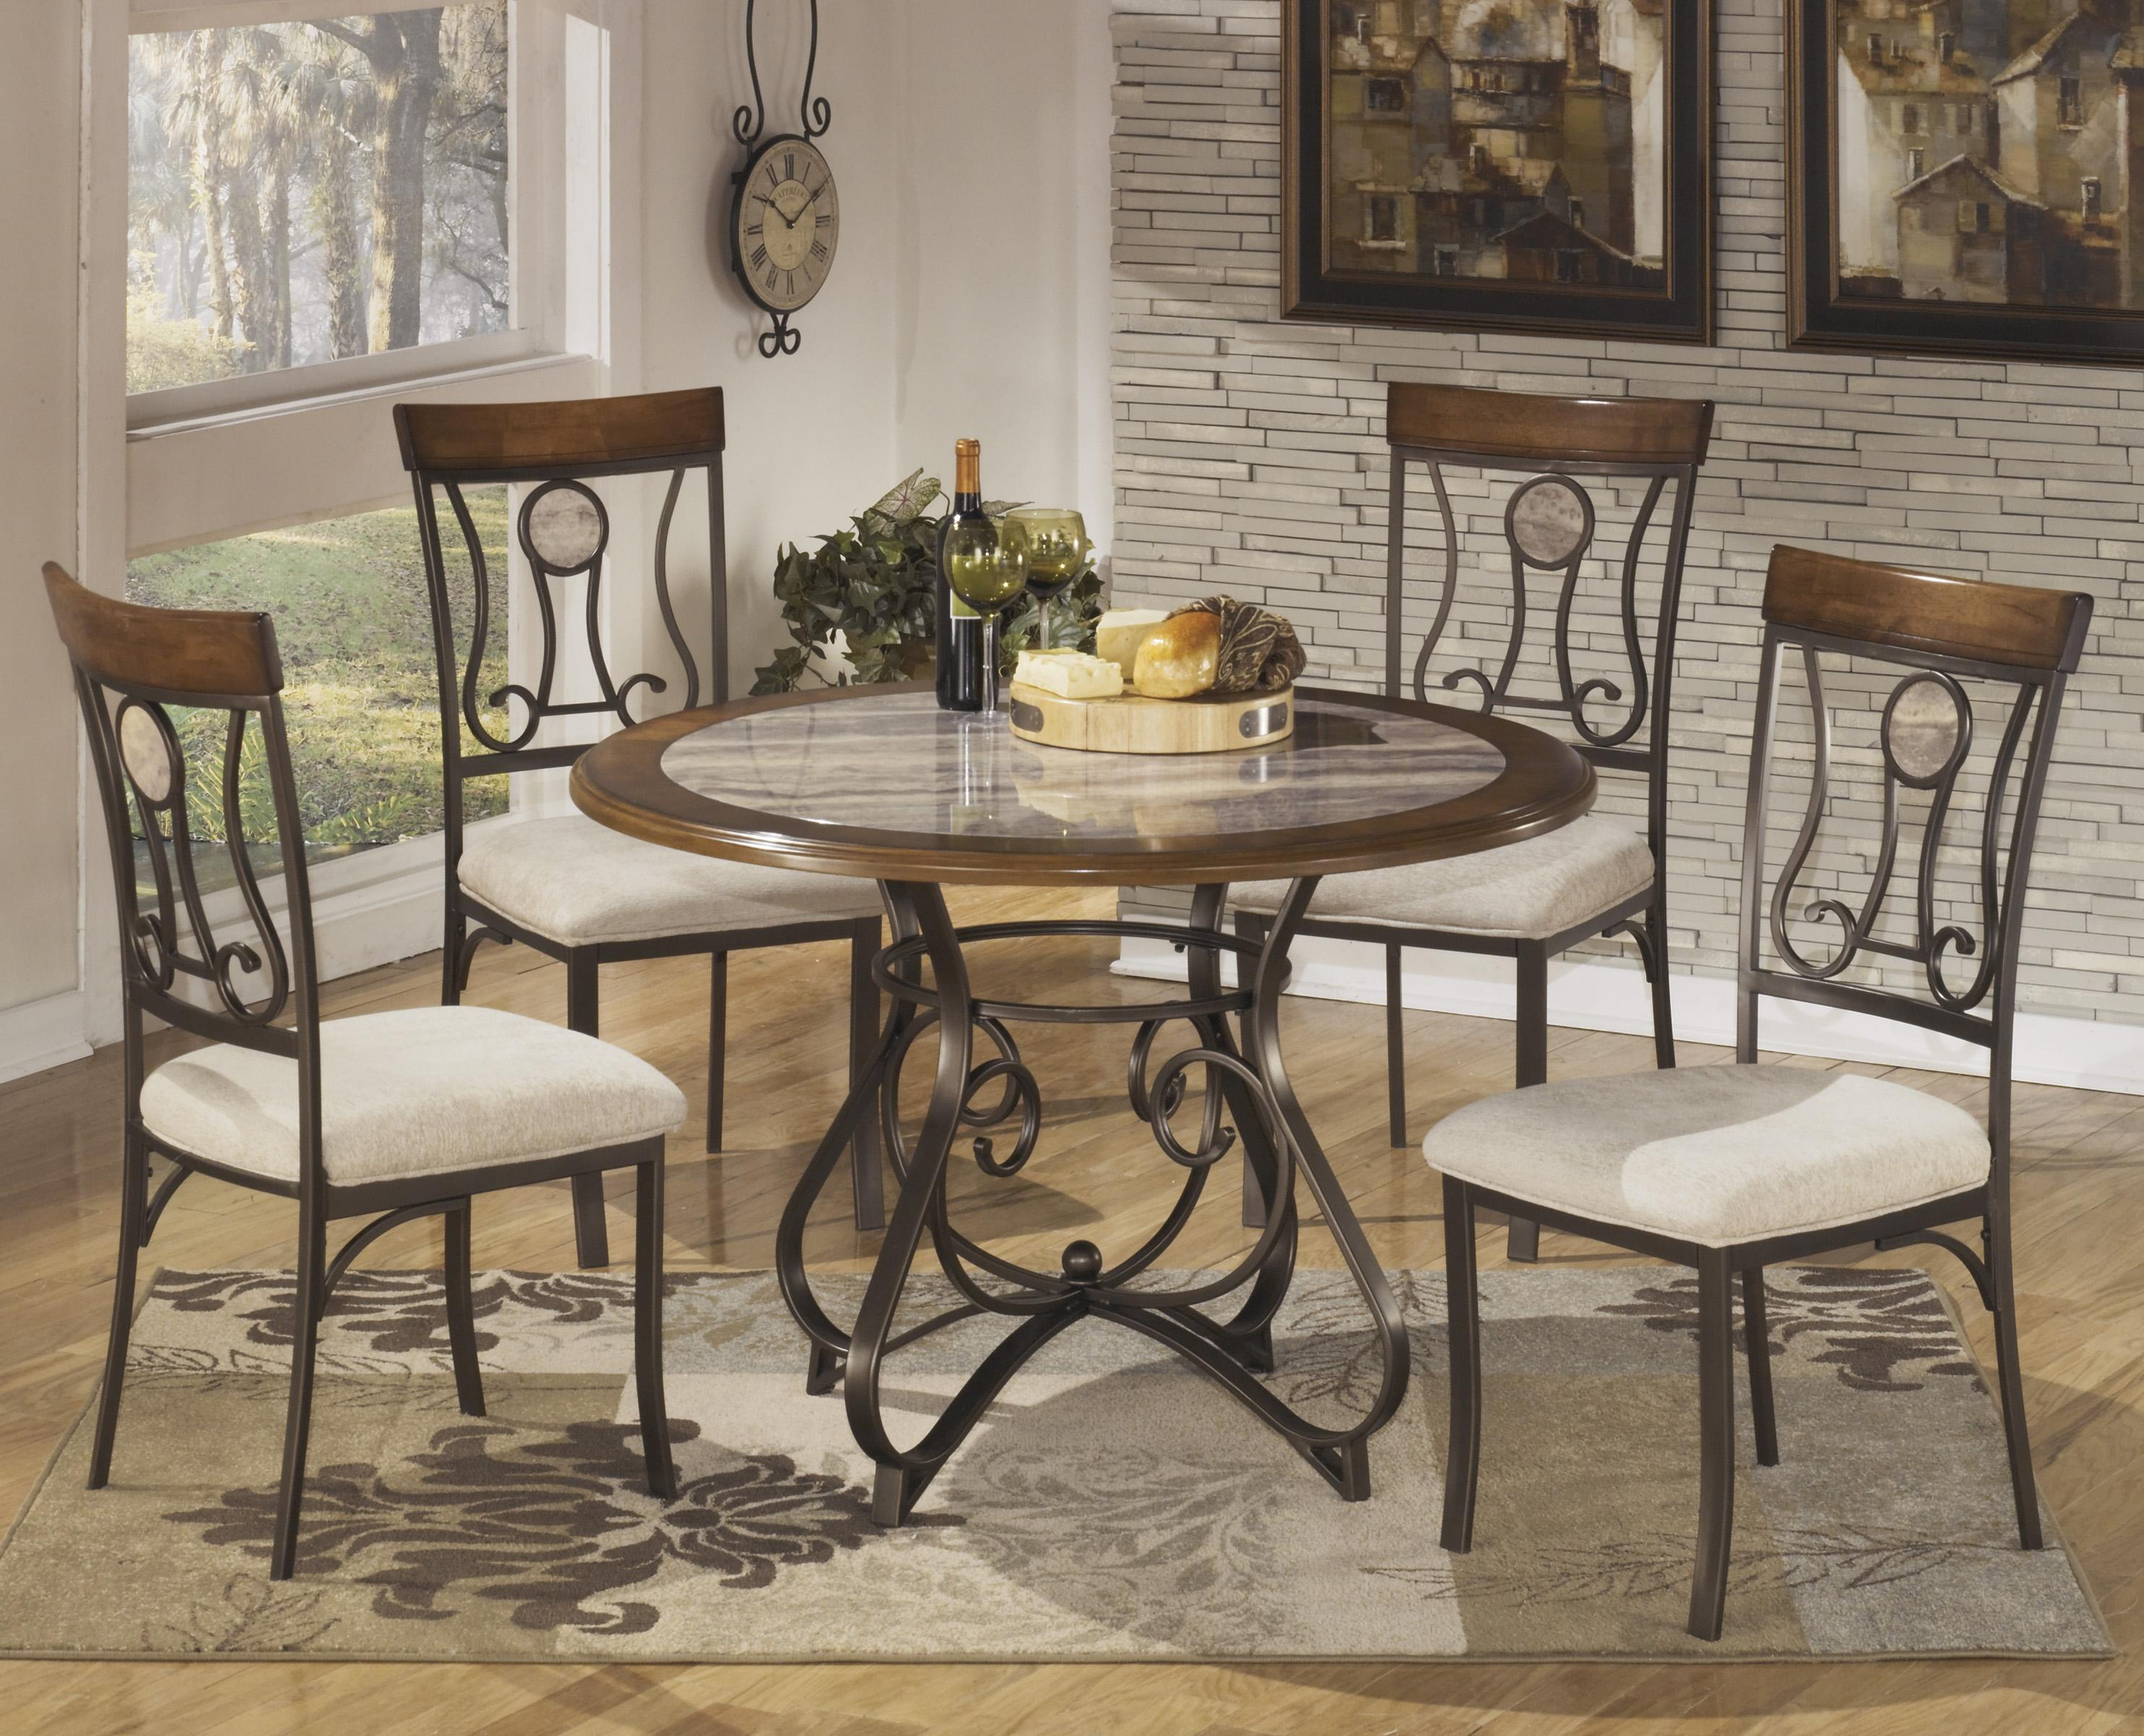 Great Signature Design By Ashley Tilley 5 Piece Round Dining Table Set   Item  Number: